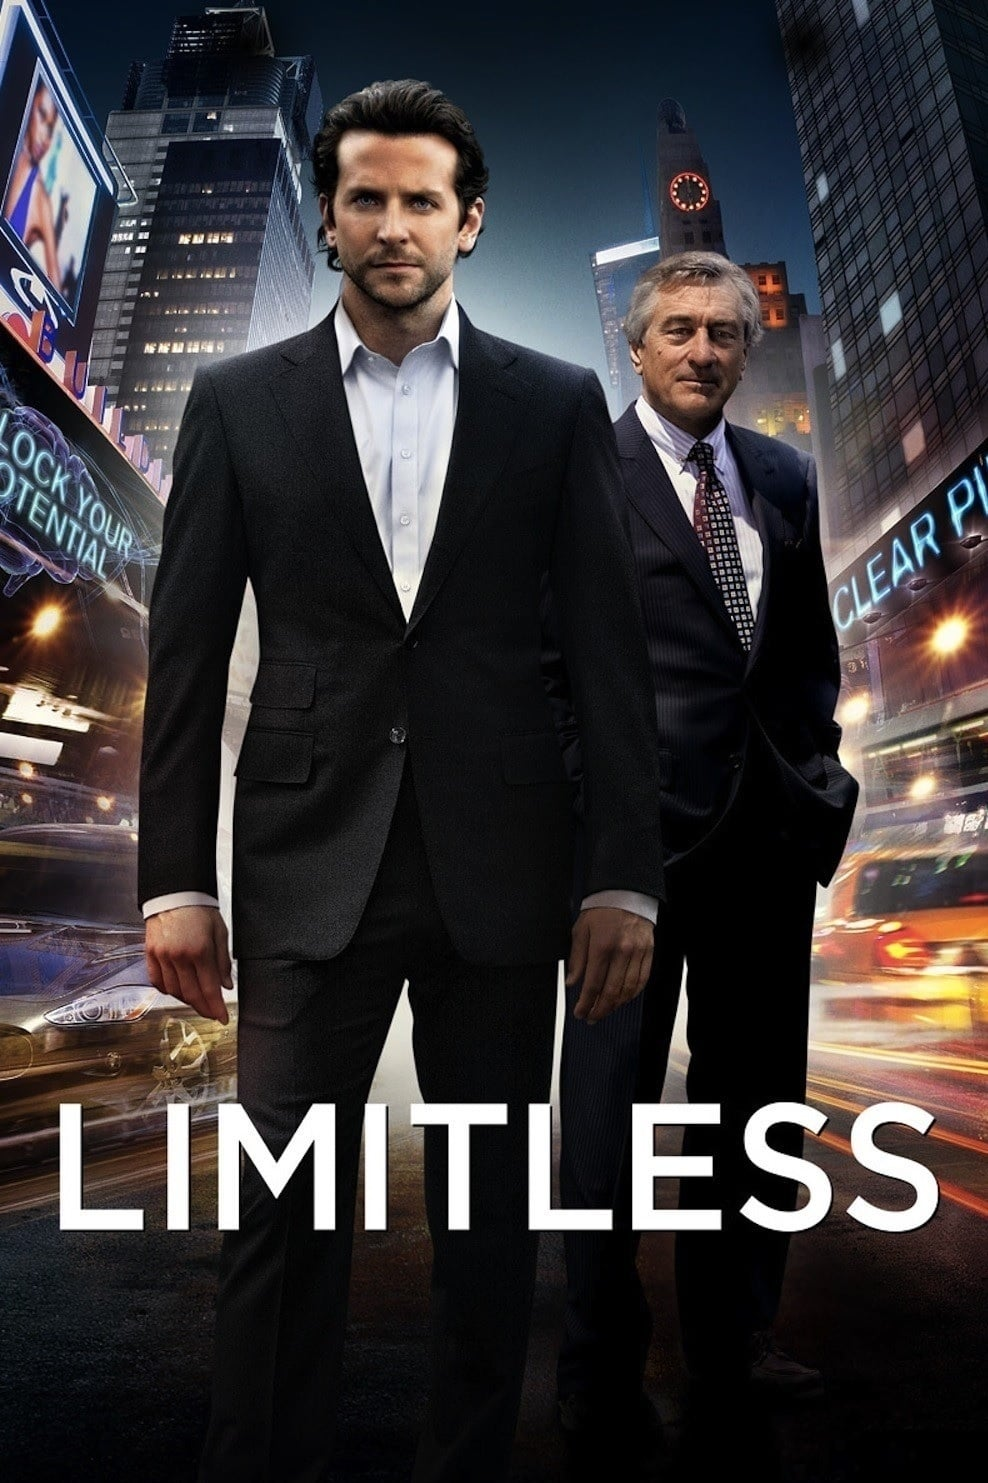 limitless2 limitless classic 2 vintage